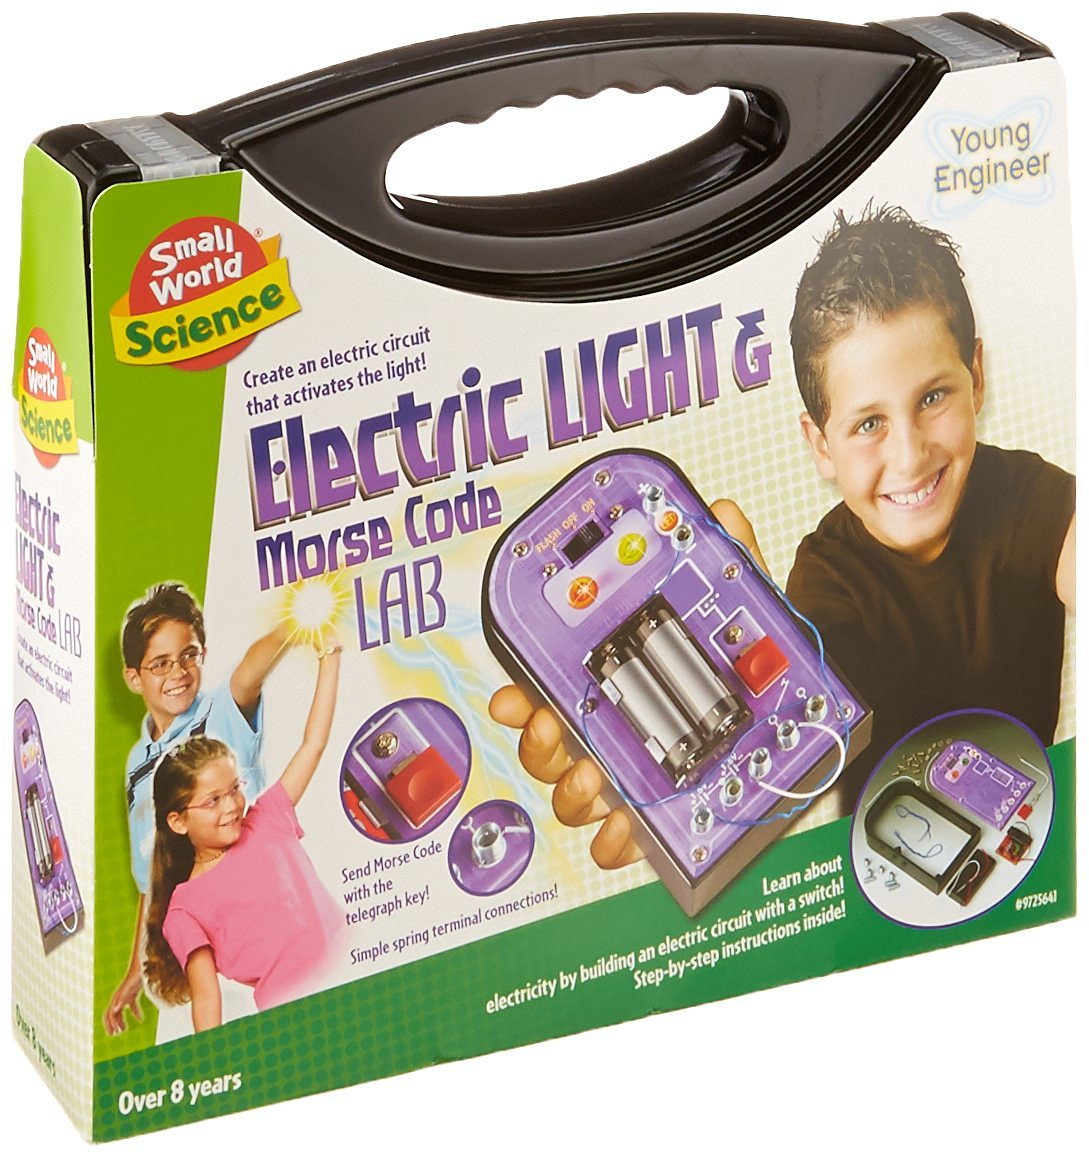 Small World Toys Science - Electric Light Lab